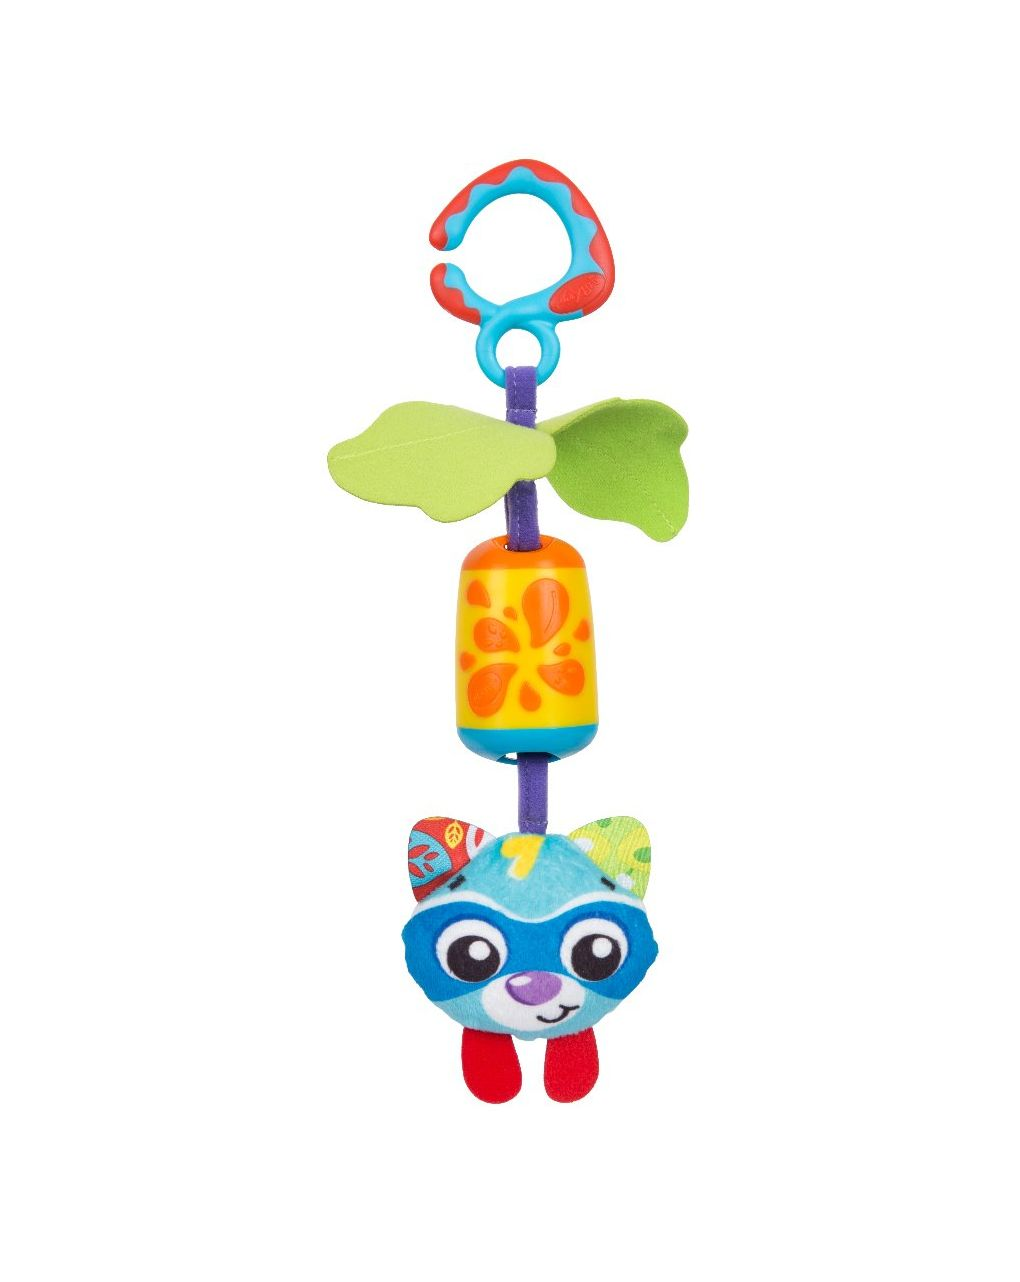 Playgro - cheeky chime rocky racoon - Playgro